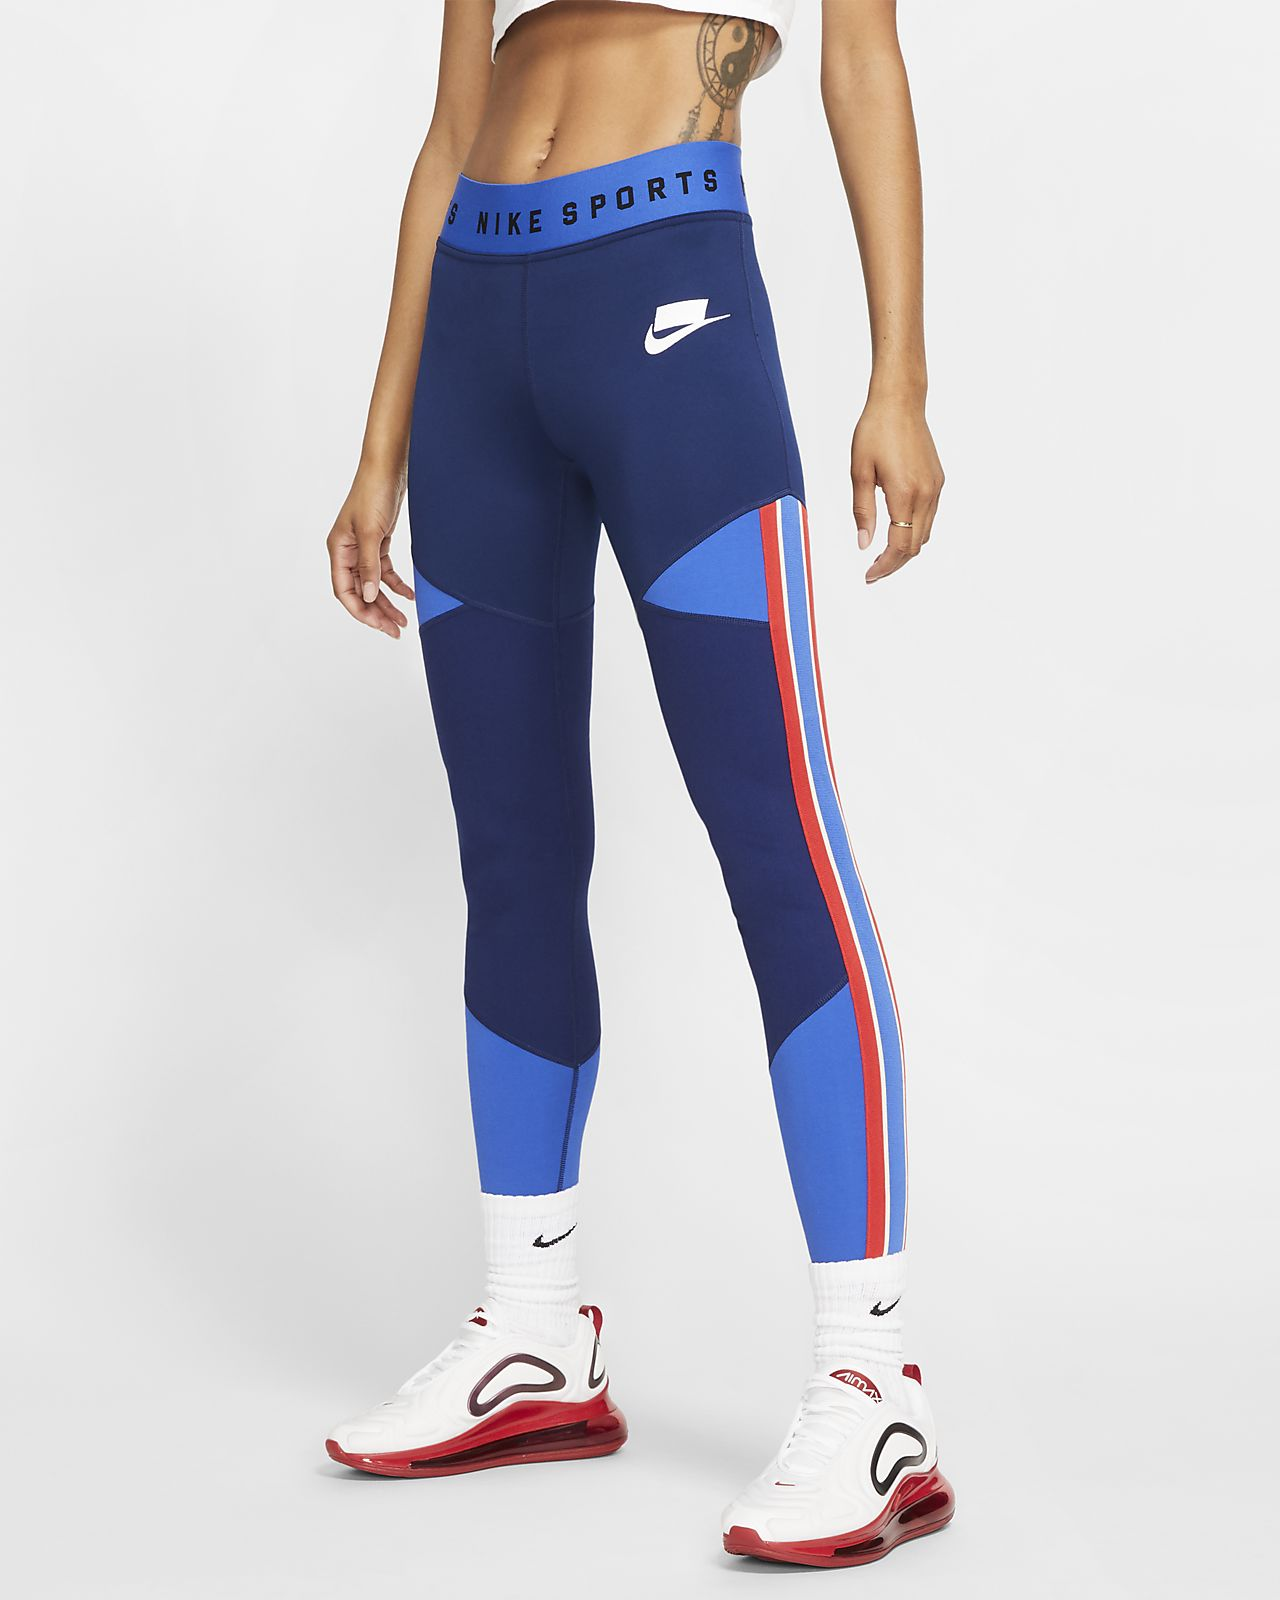 Nike Sportswear NSW Women's Graphic Leggings